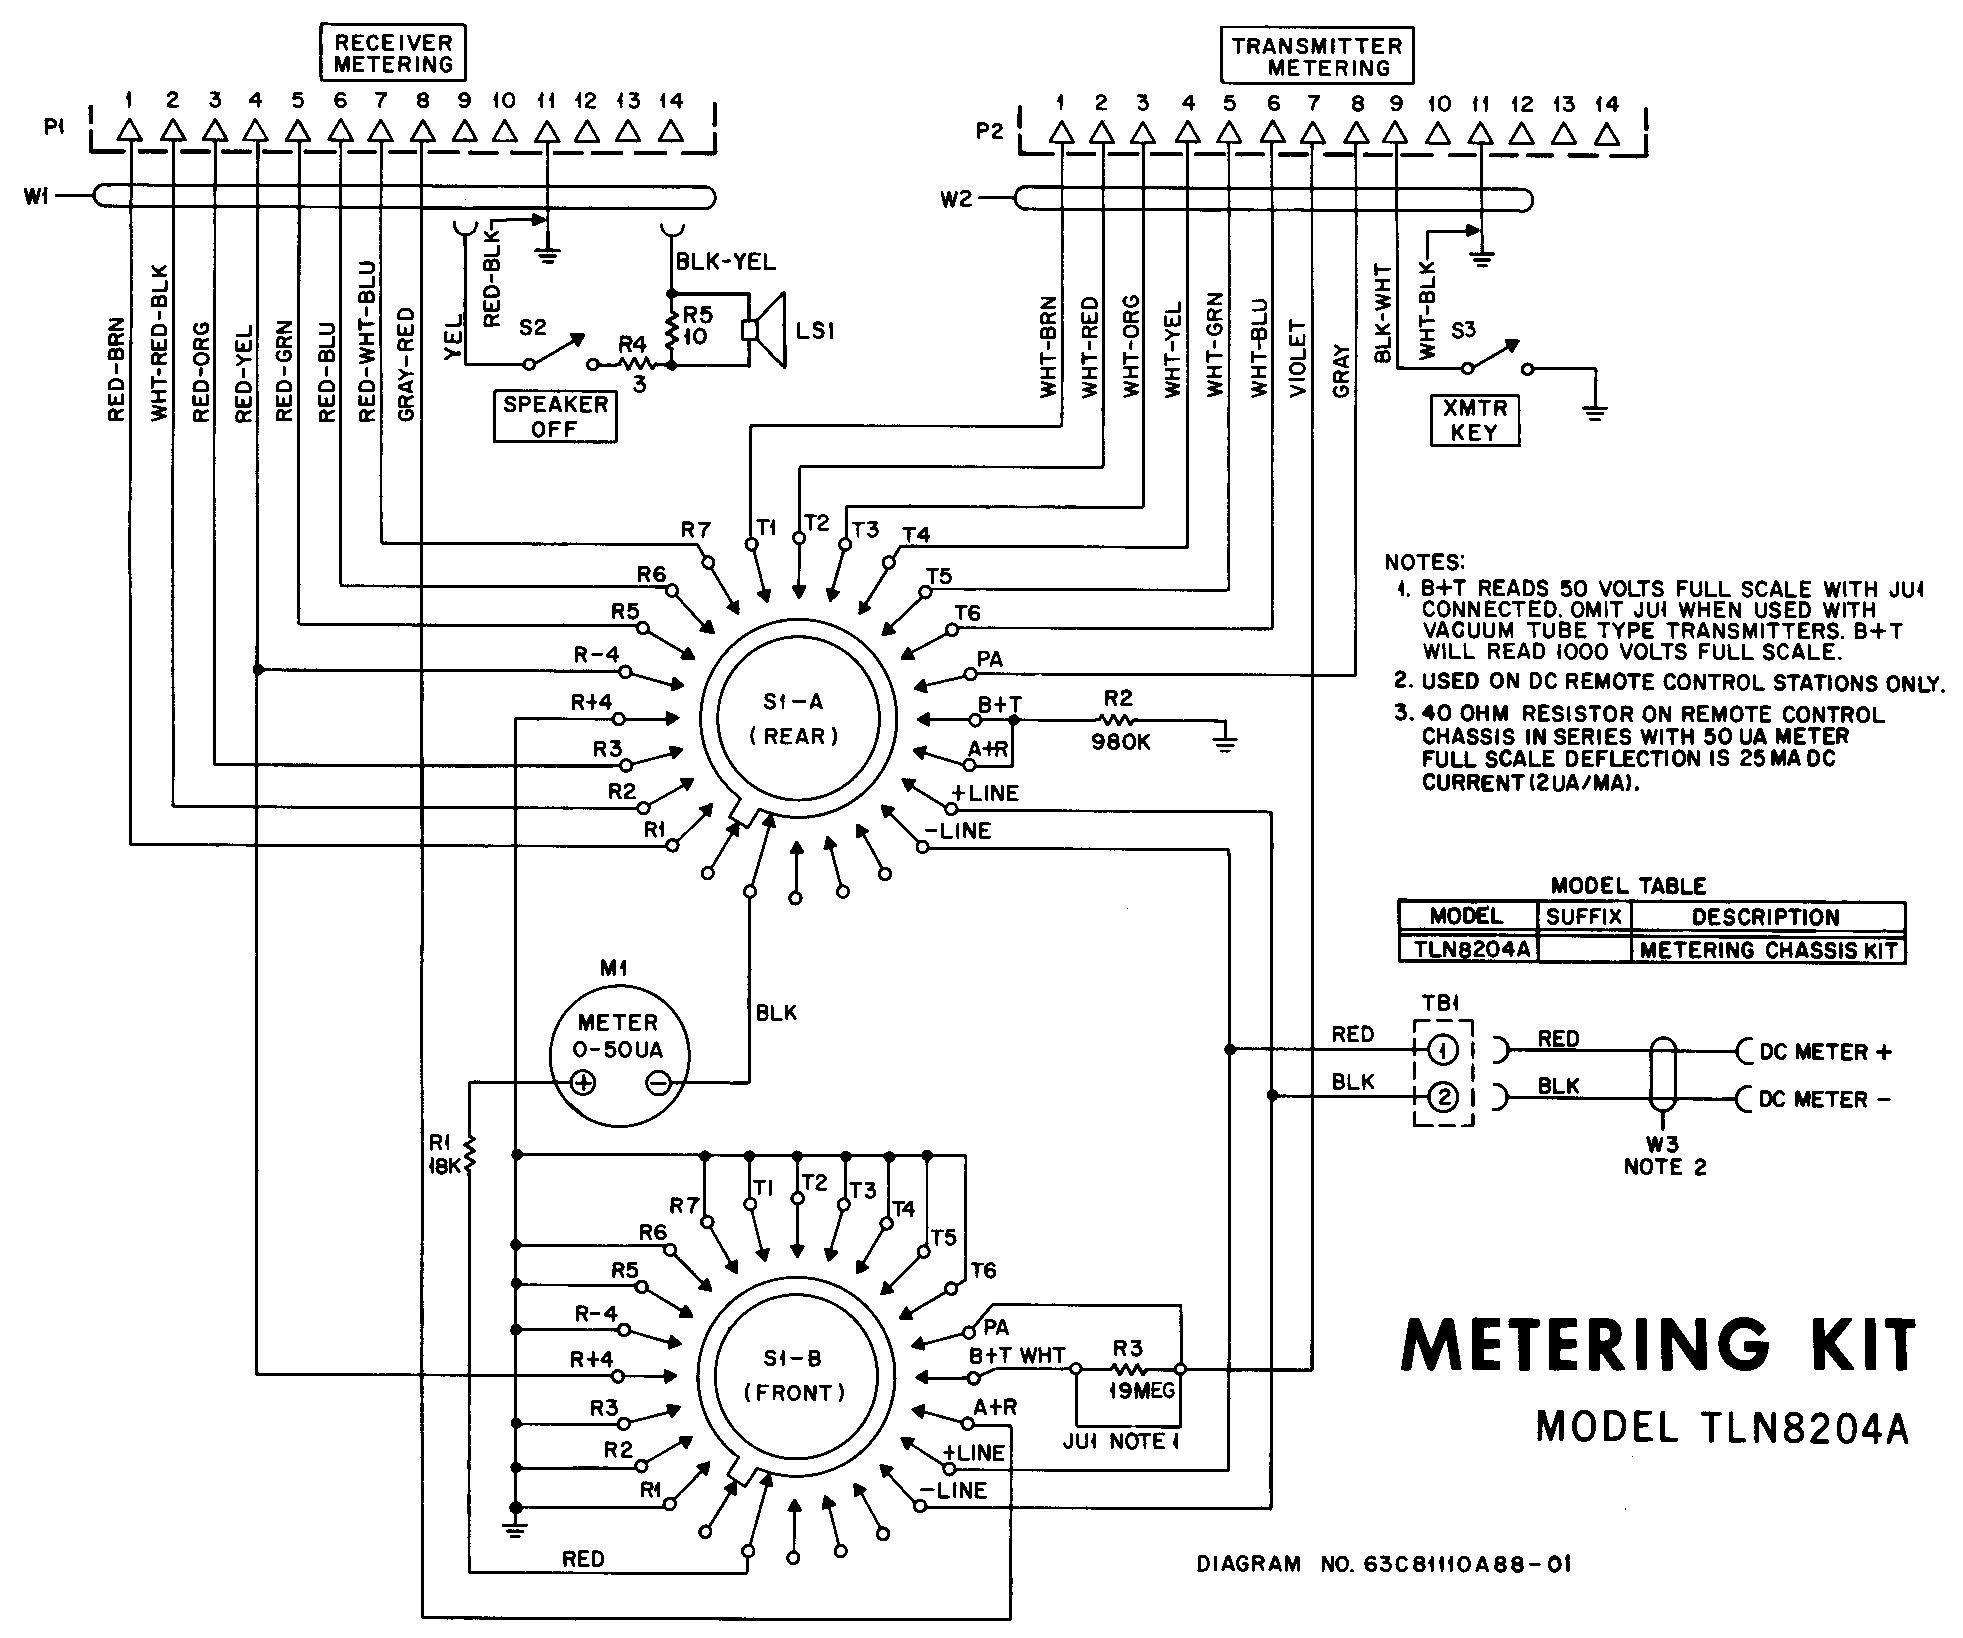 3 position switch wiring diagram checking for testicular cancer rotary schematic symbol get free image